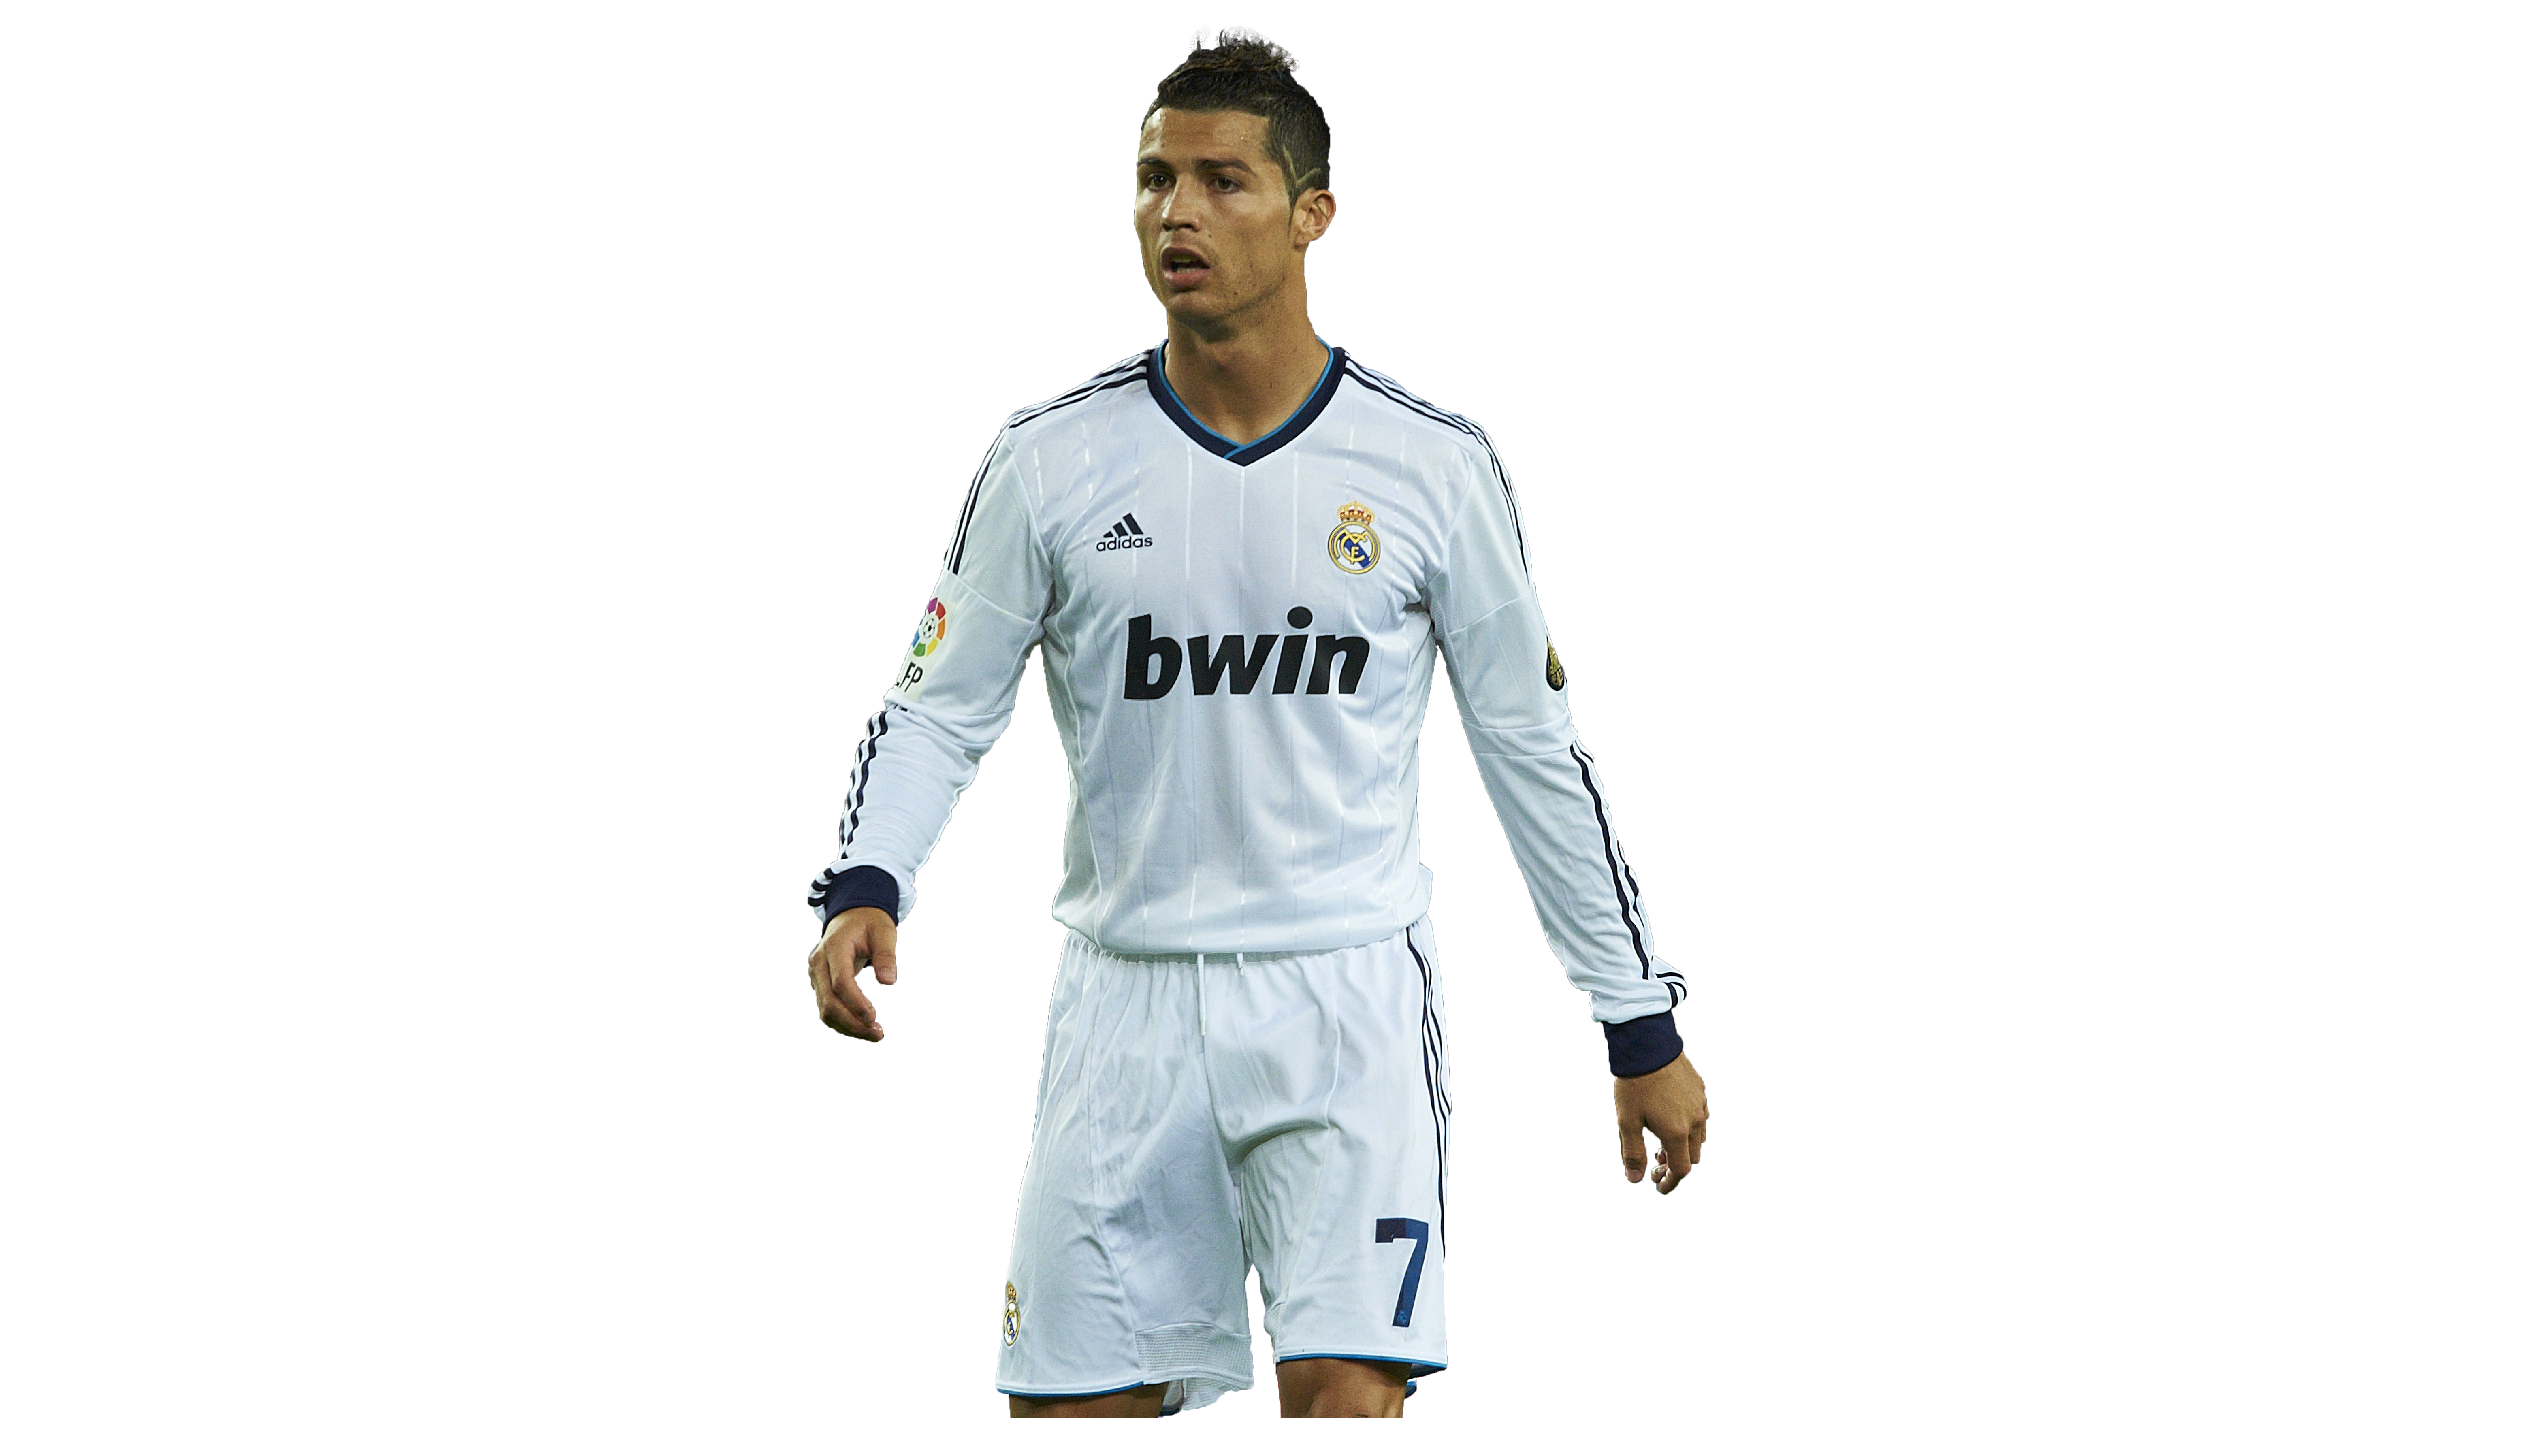 download cristiano ronaldo png images free icons and png